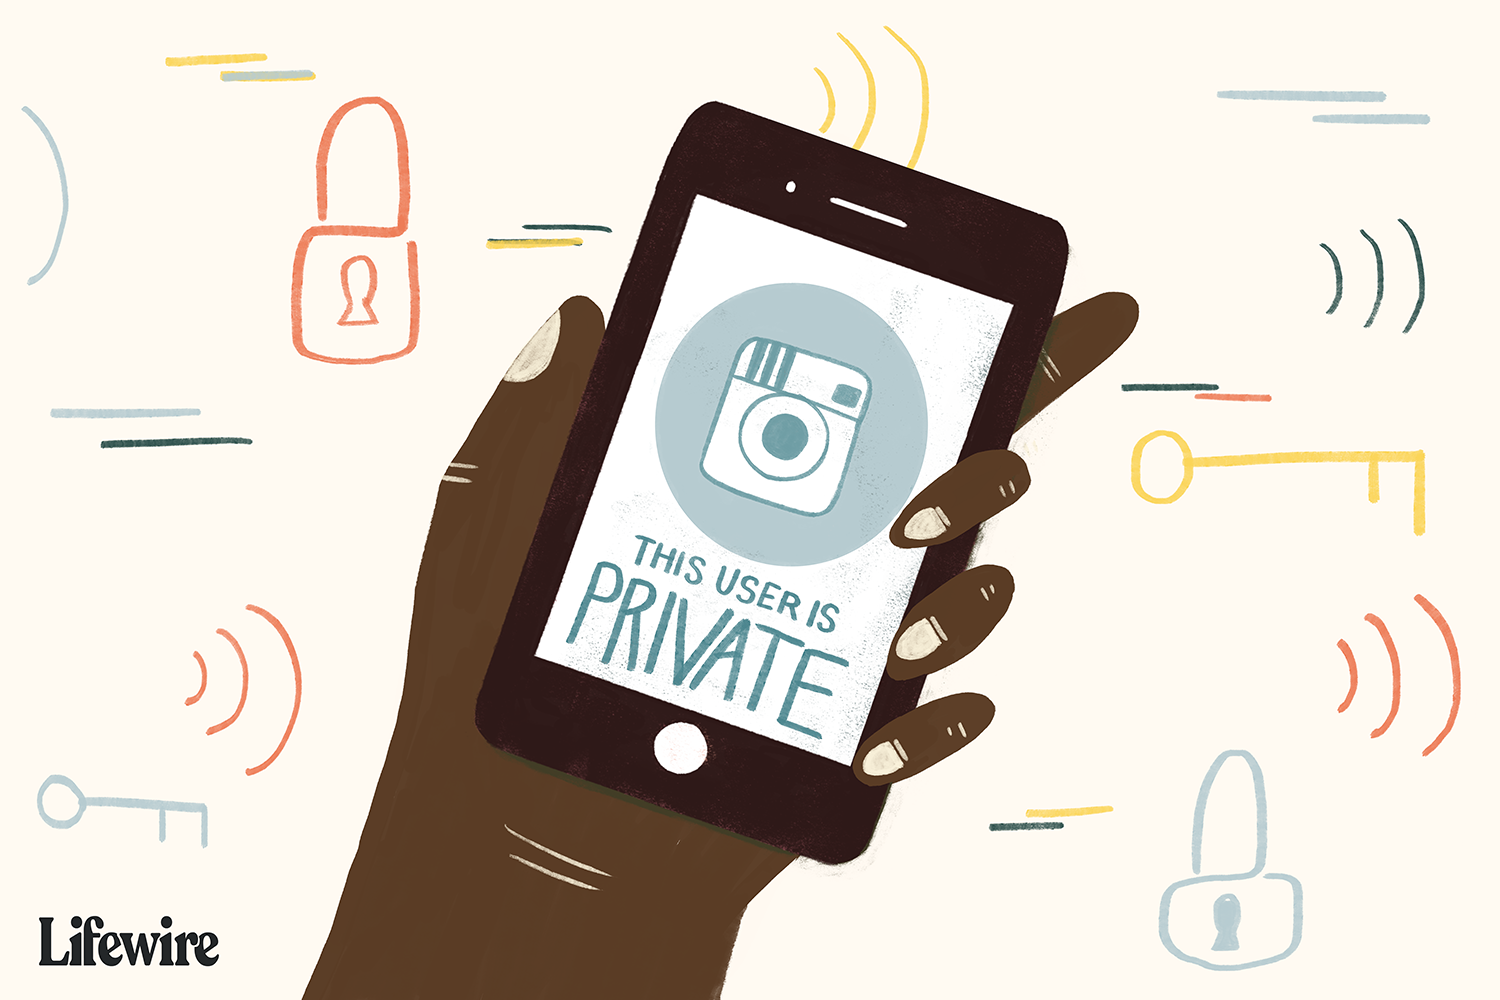 Exactly How To Sight Private Instagram Exposed